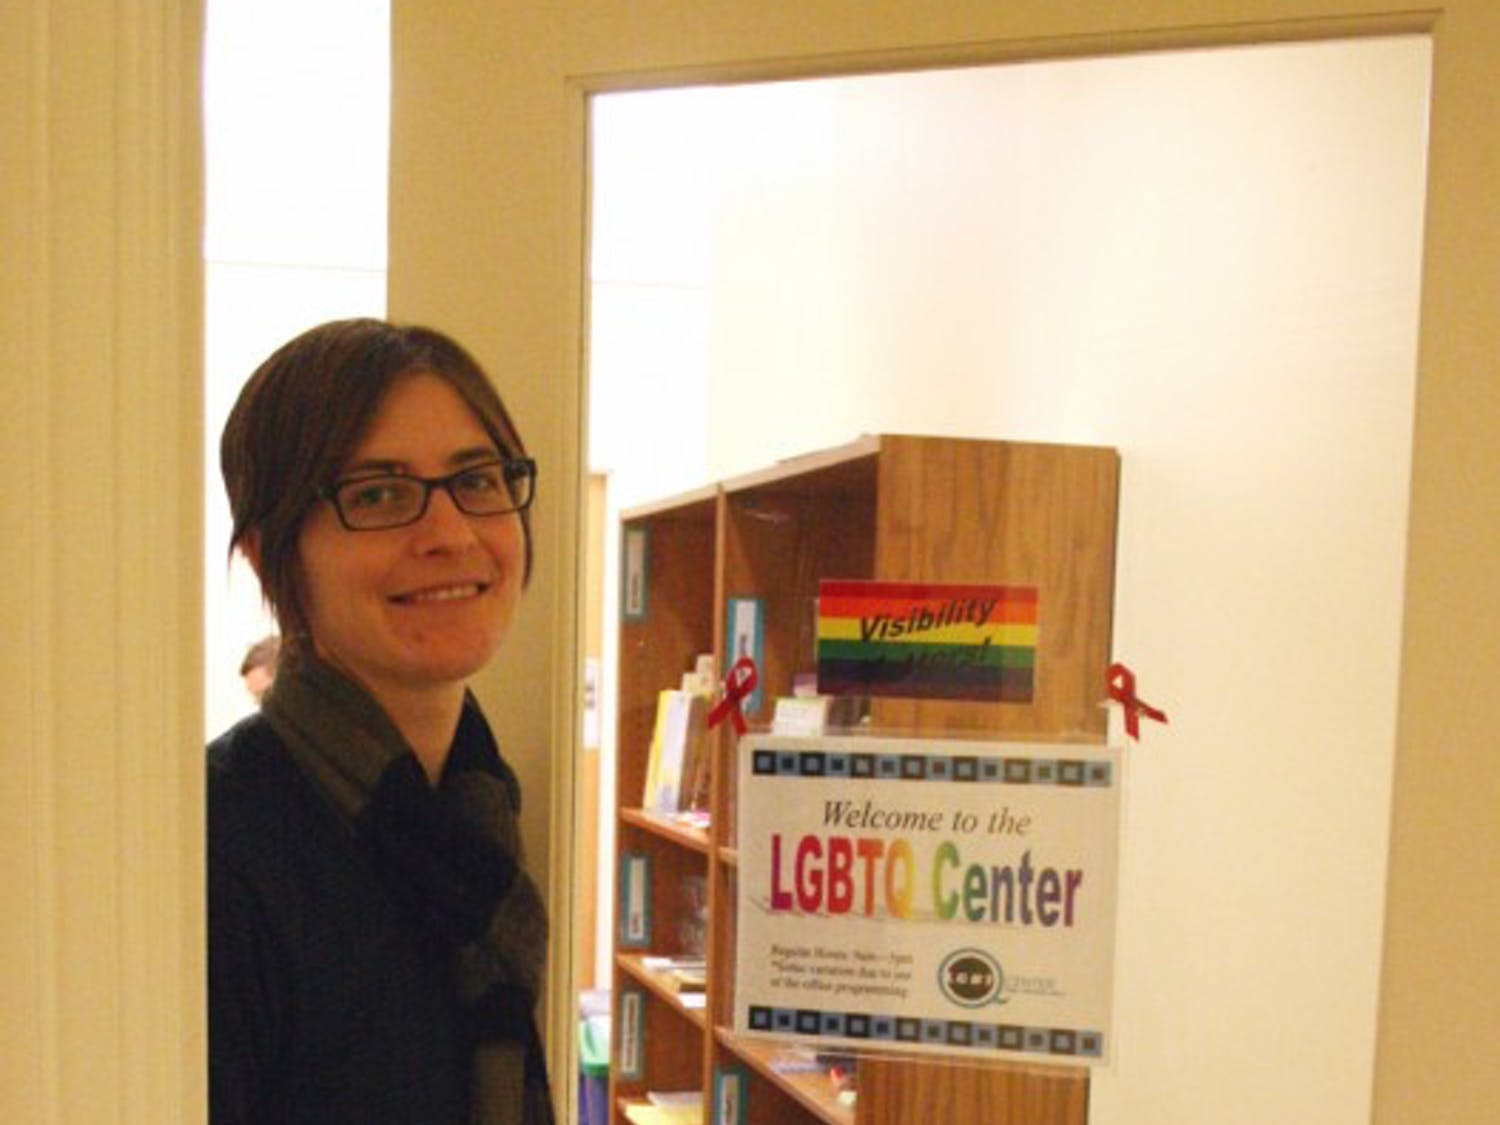 Danny DePuy, assistant director of the Lesbian, Gay, Bisexual, Transgender and Queer Center, stands at its door.  She thinks there needs to be more education about cyber bullying effects.